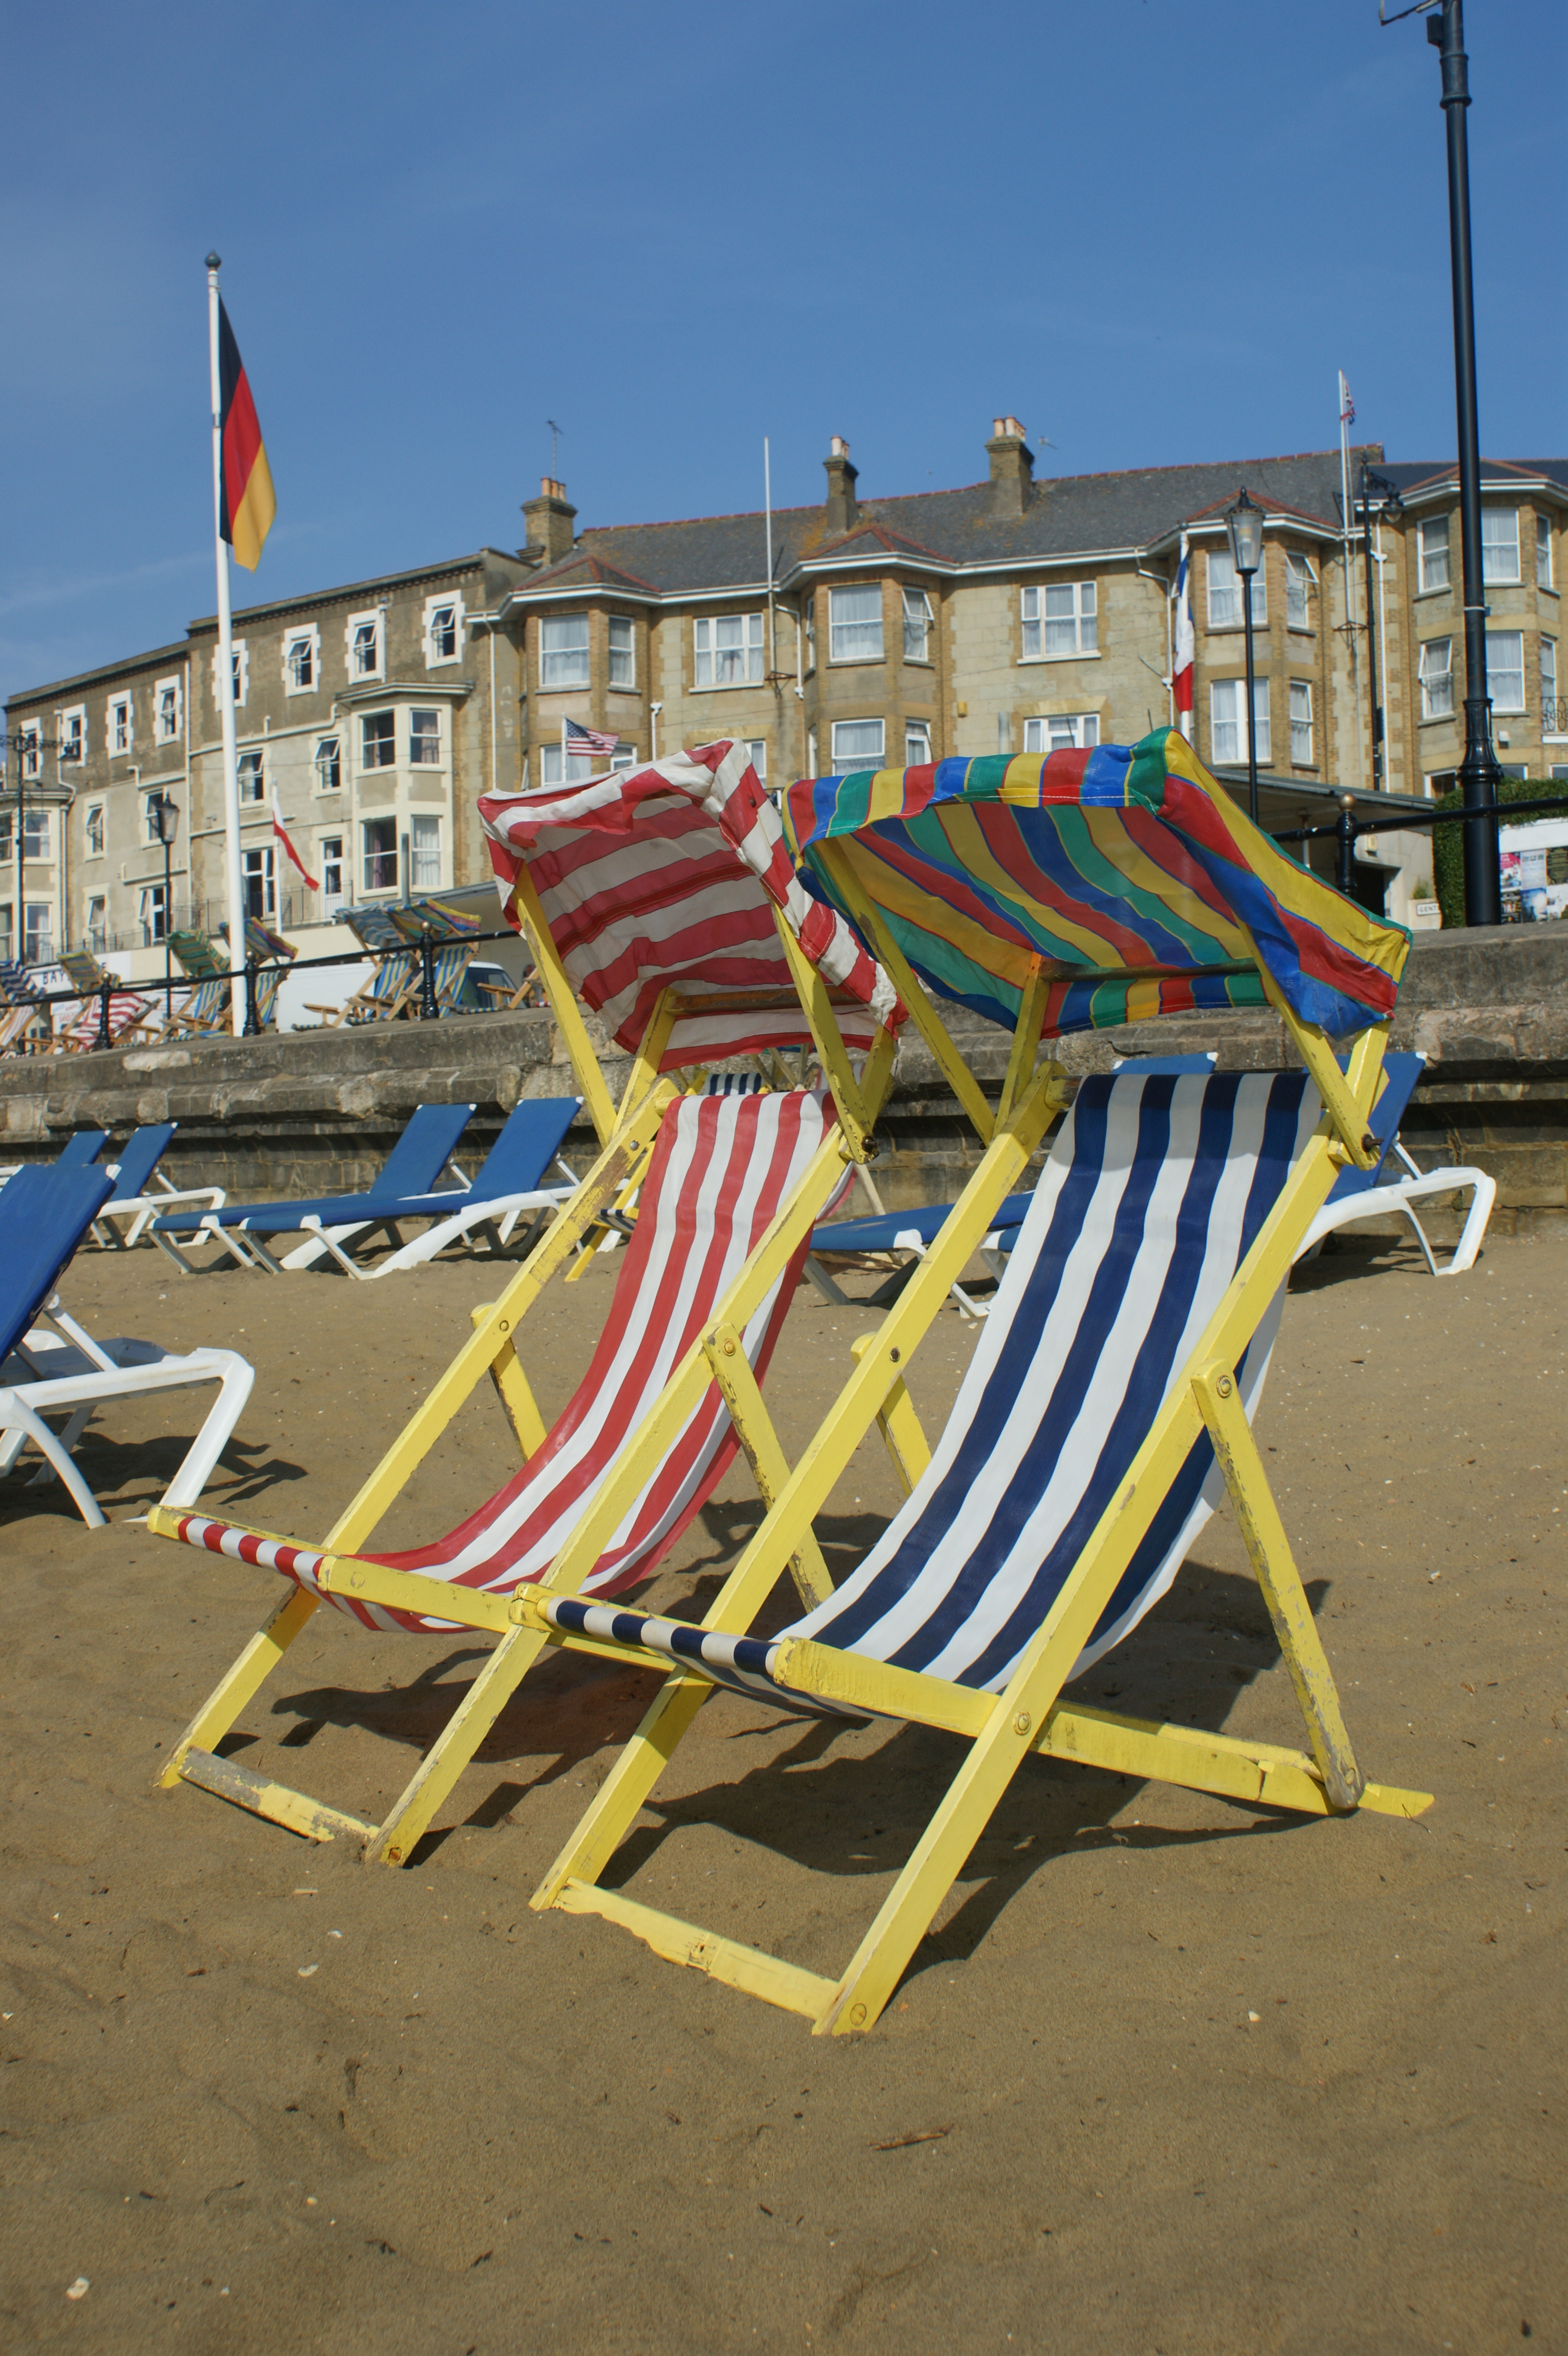 blake deck designs deckchairs kate chair chairs